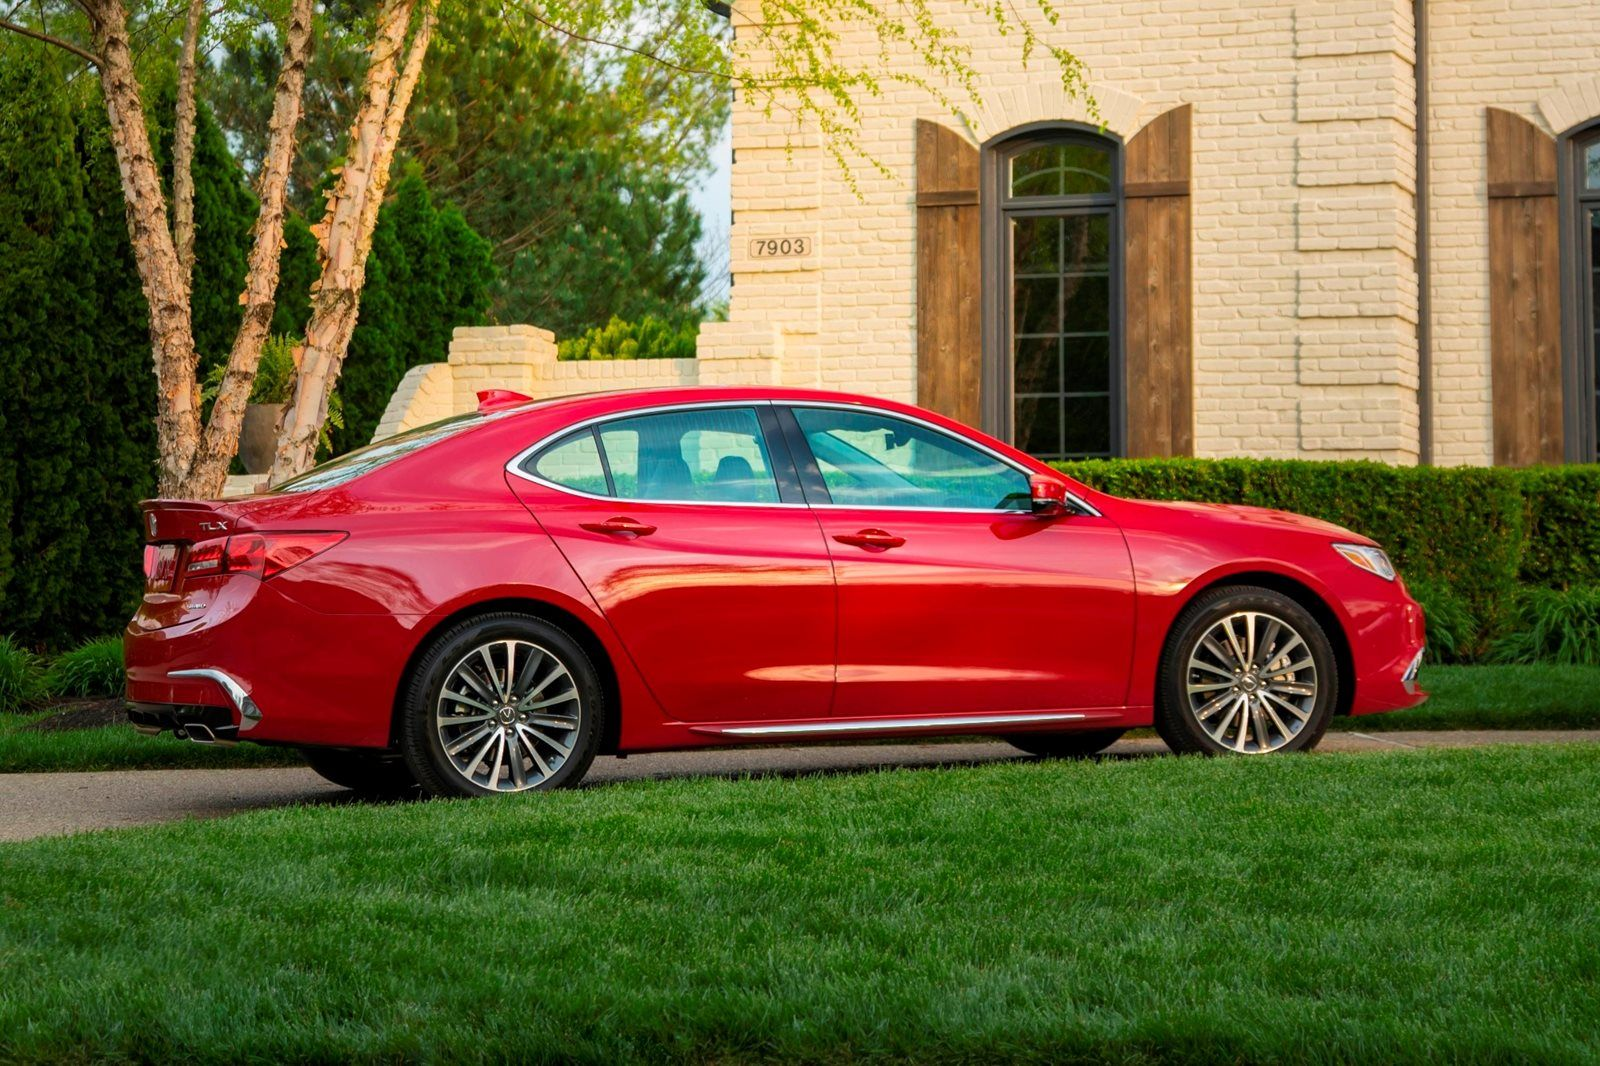 Red Acura TLX side view